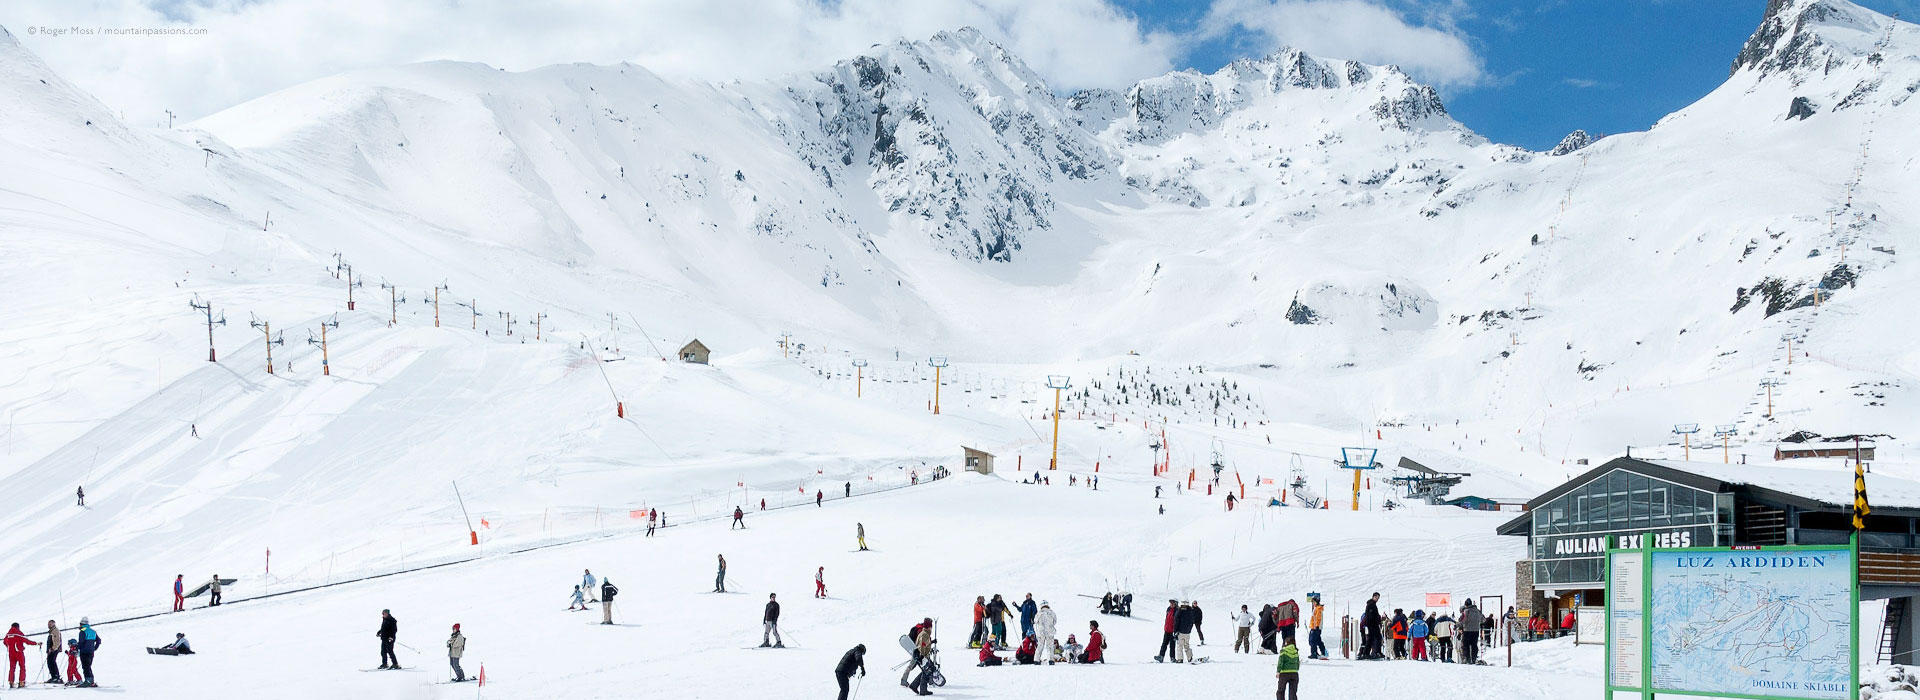 View of front-de-neige area, with skiers, chairlift and mountain background at Luz Ardiden